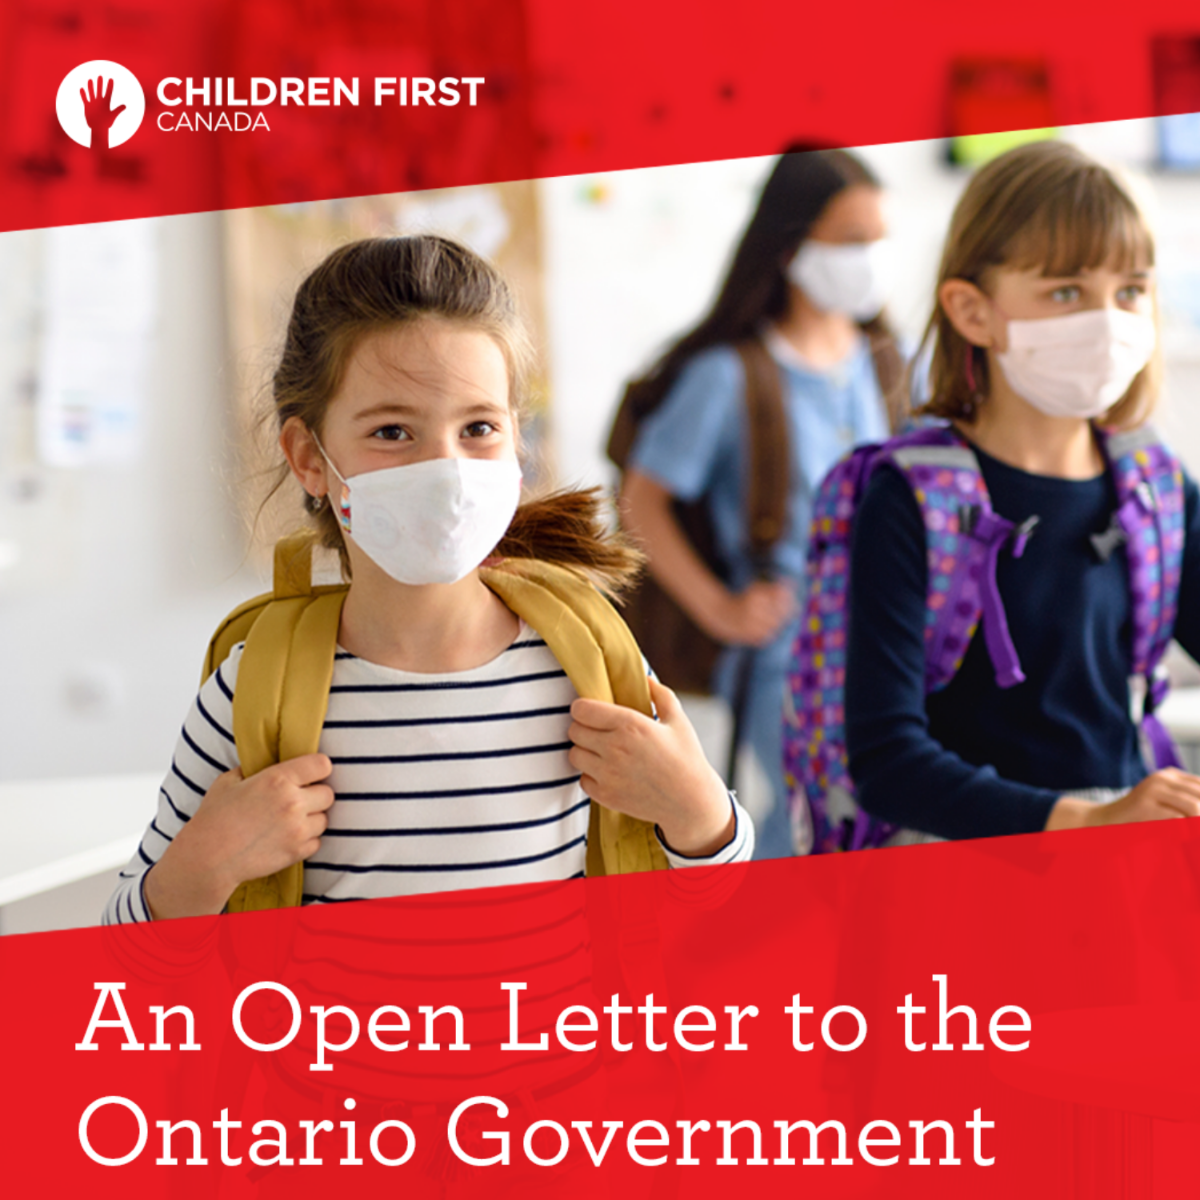 An open letter to the Ontario government